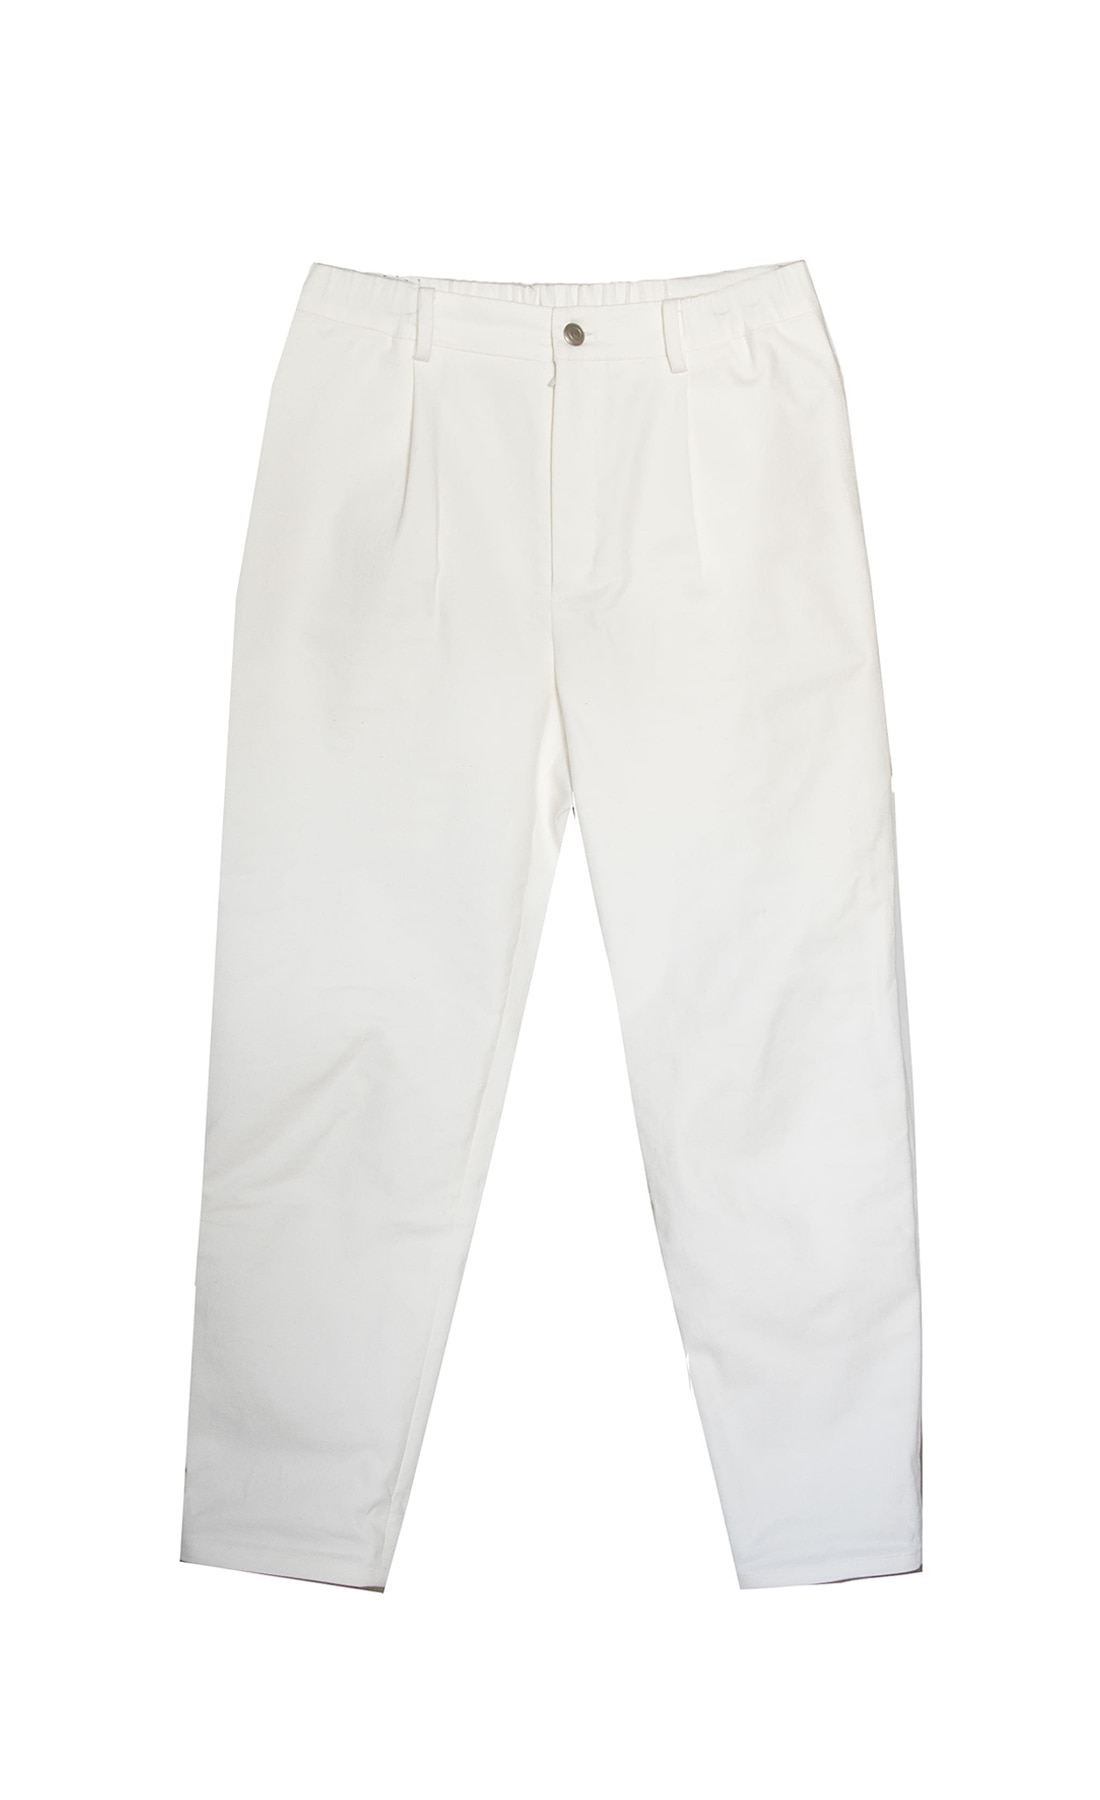 SS BACK BANDING WHITE PANTS